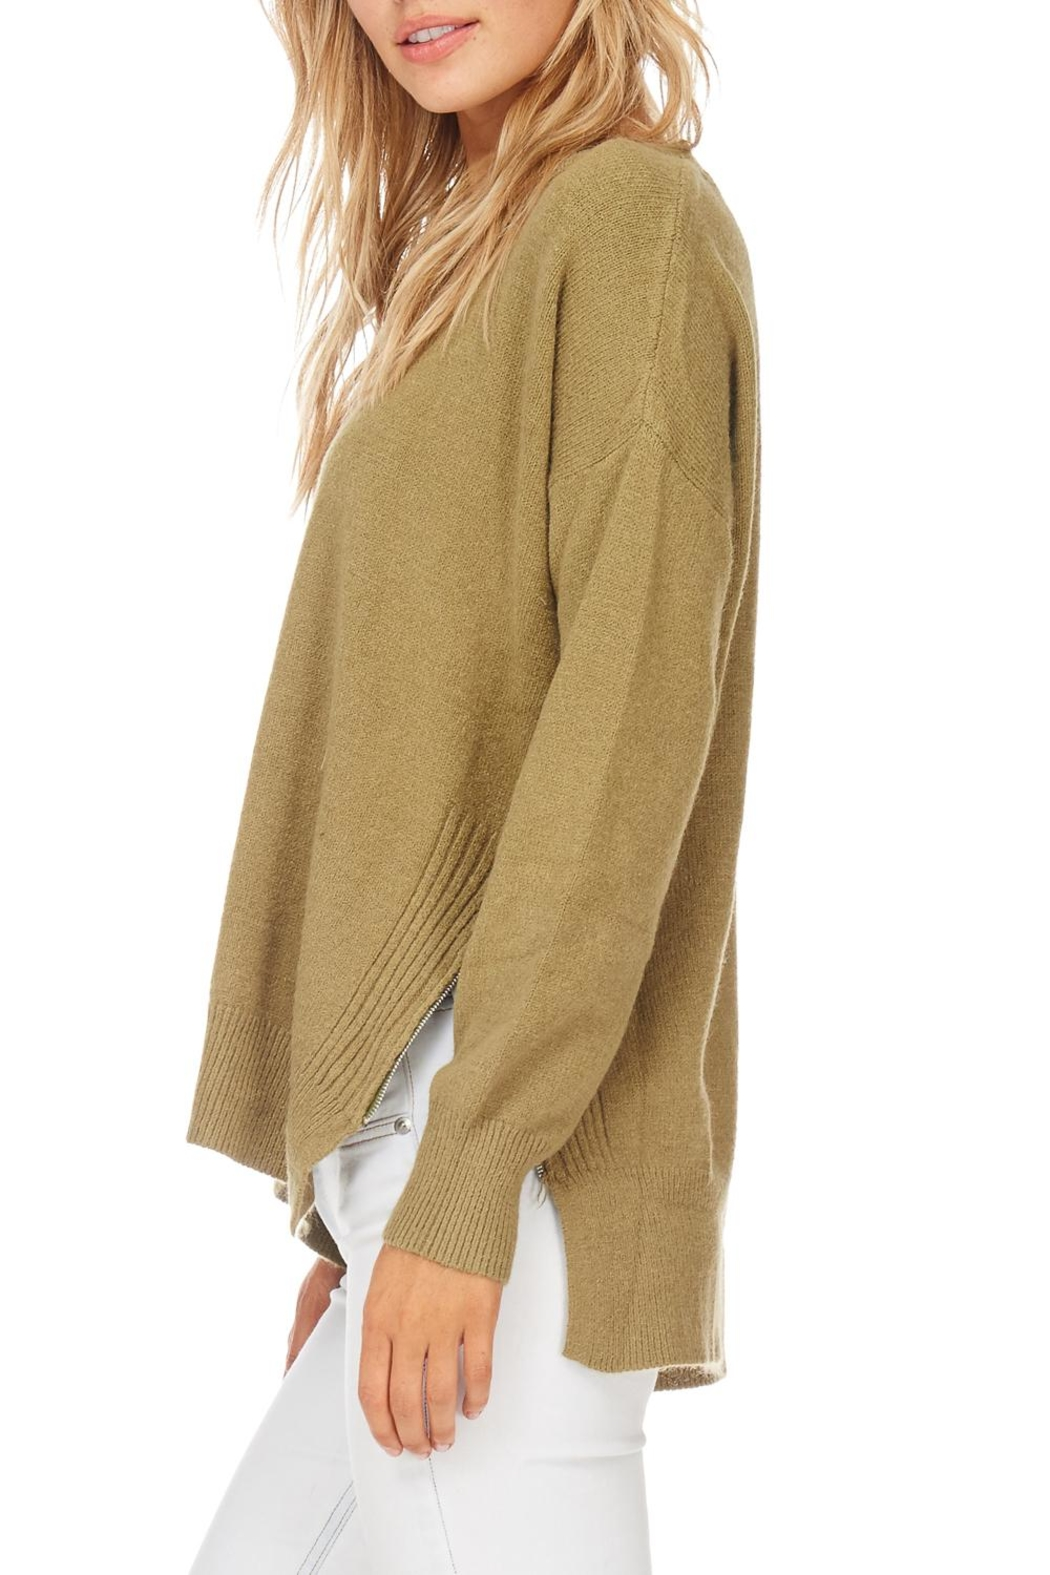 Hem & Thread Olive Zip Sweater - Back Cropped Image